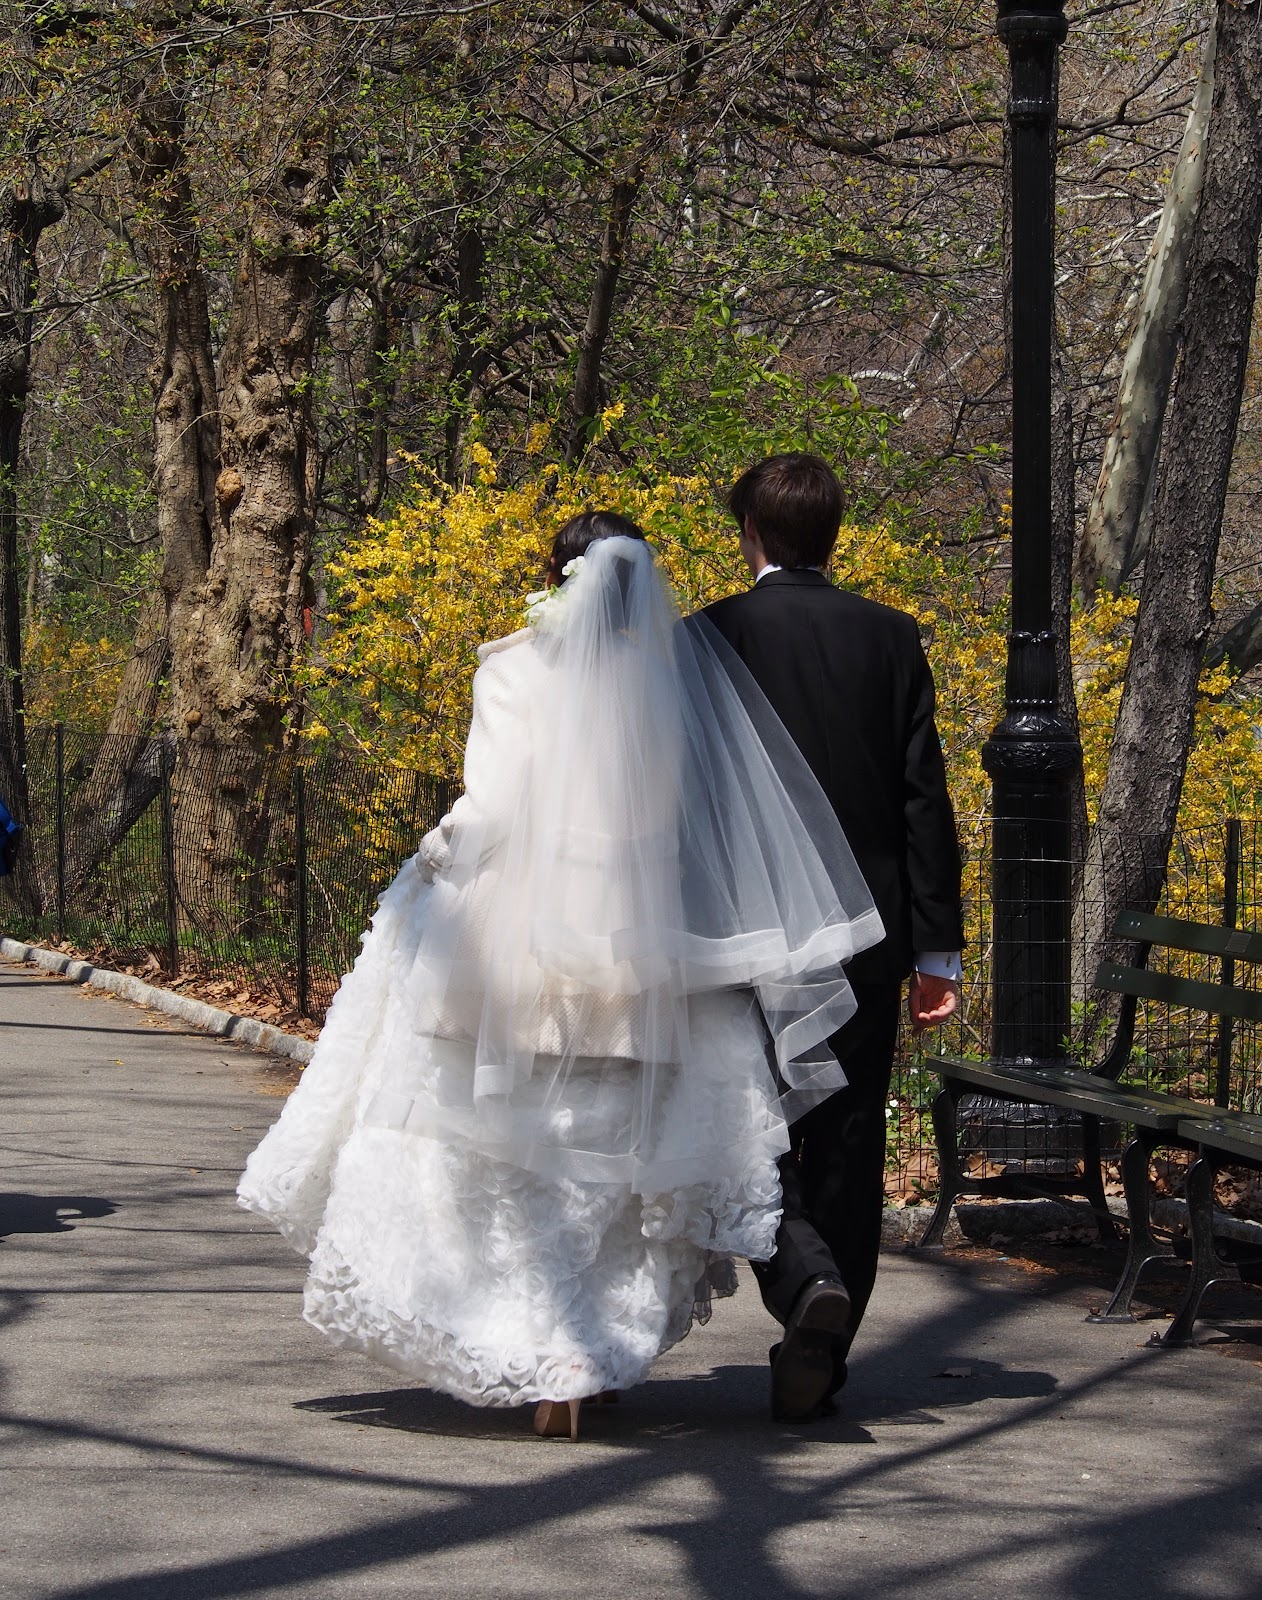 Just Married #NYC #frombehind #justmarried #centralpark #wedding 2014